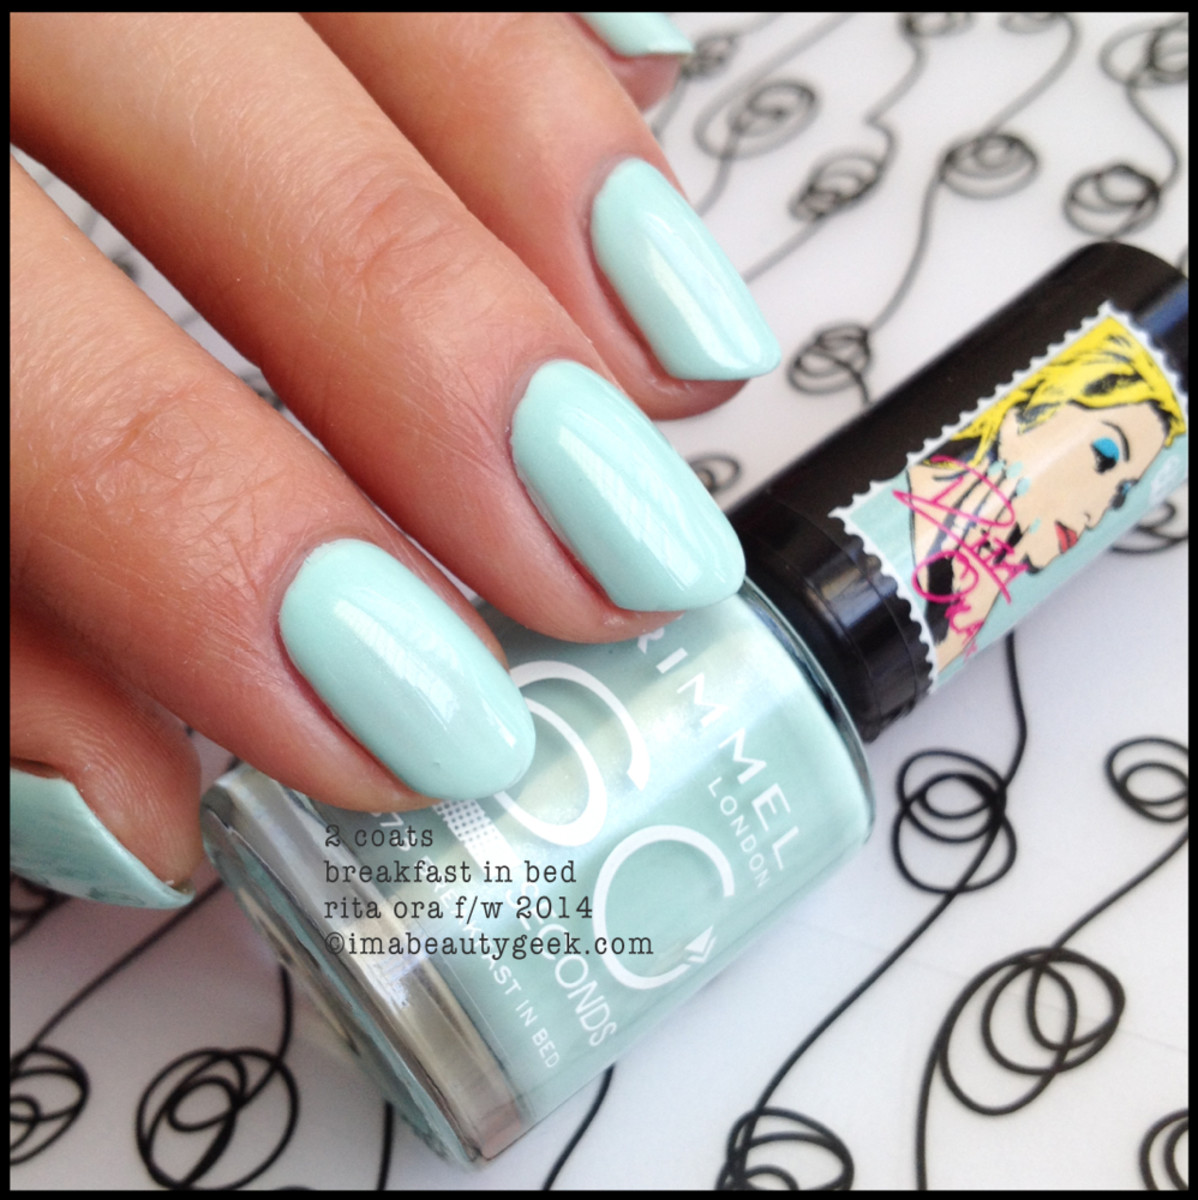 Rimmel Rita Ora 2014 Breakfast in Bed 2 coats